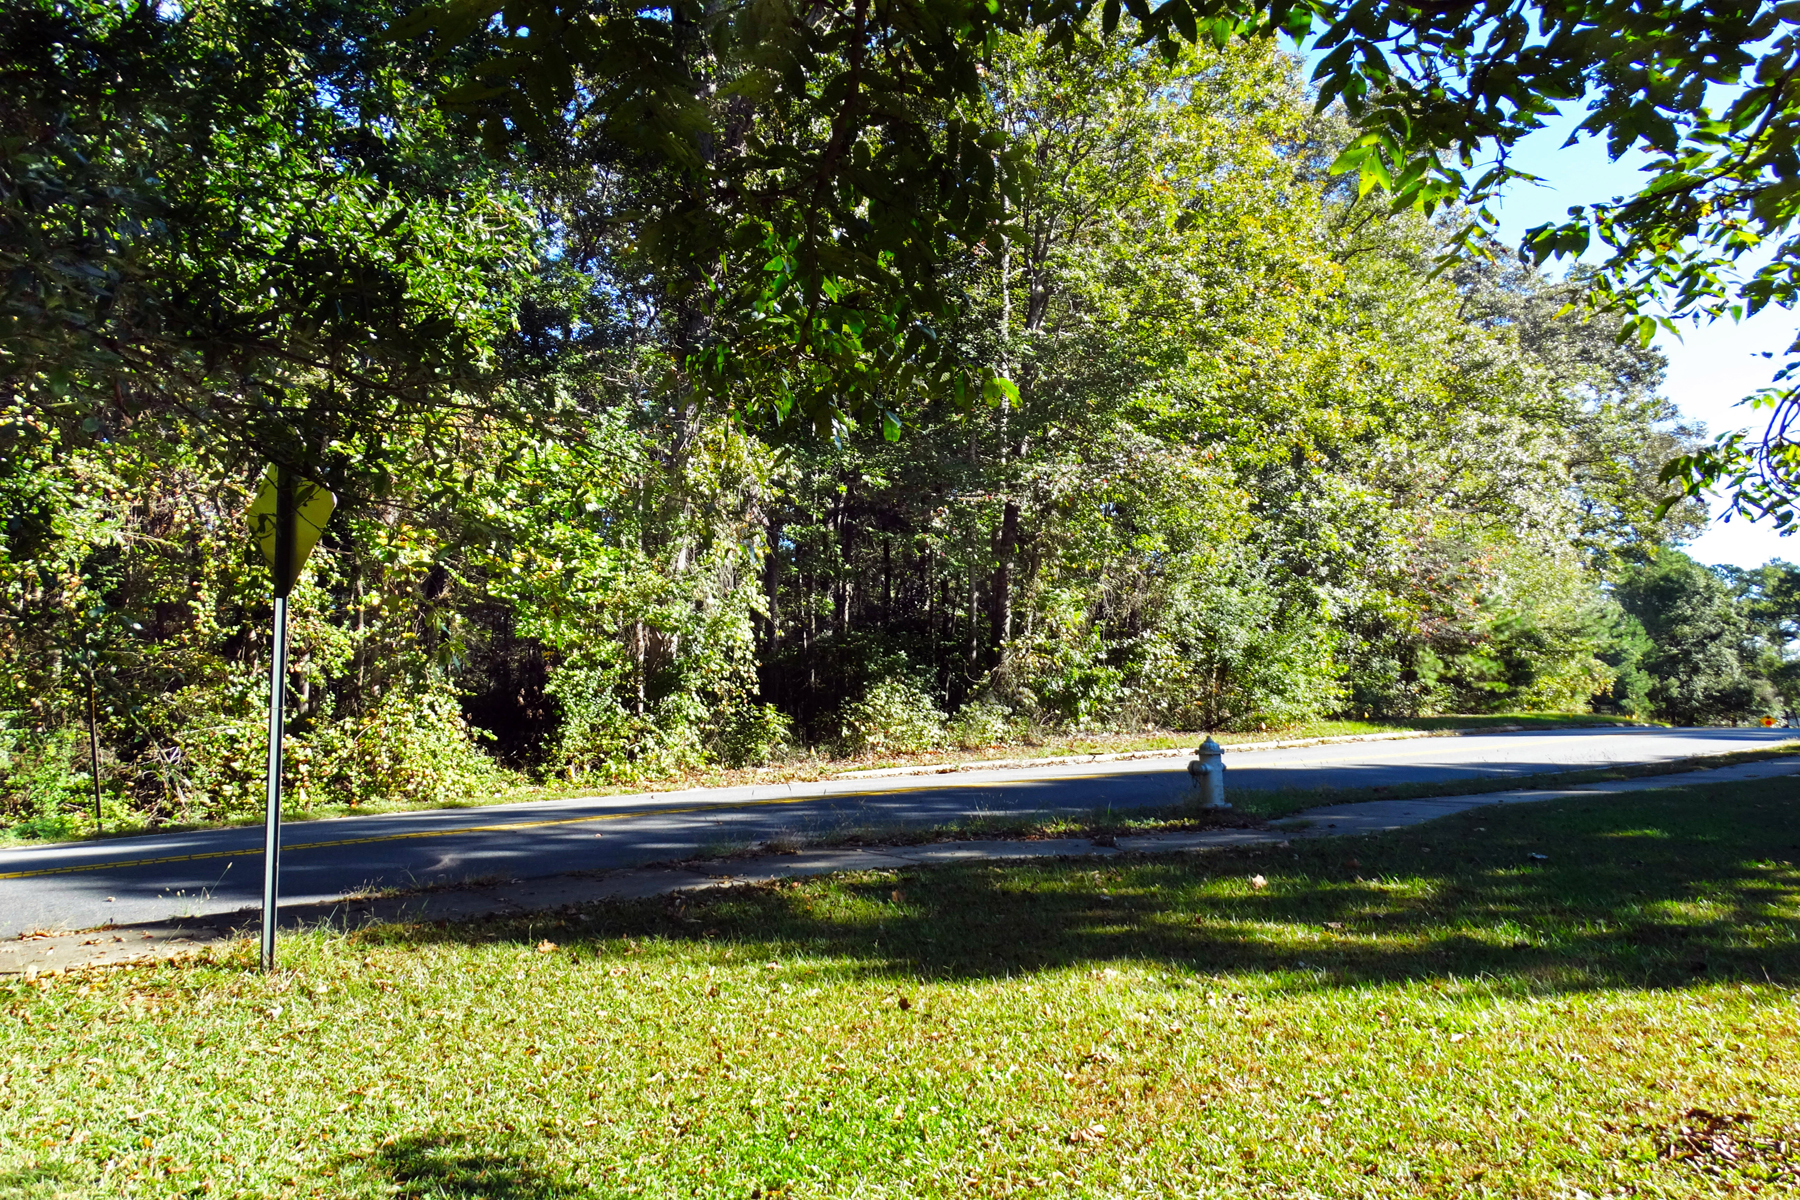 Land for Sale at 1.8+/- Acre Prime Lot Ready To Build 0 Gaydon Road Lot No. 3 Powder Springs, Georgia 30127 United States